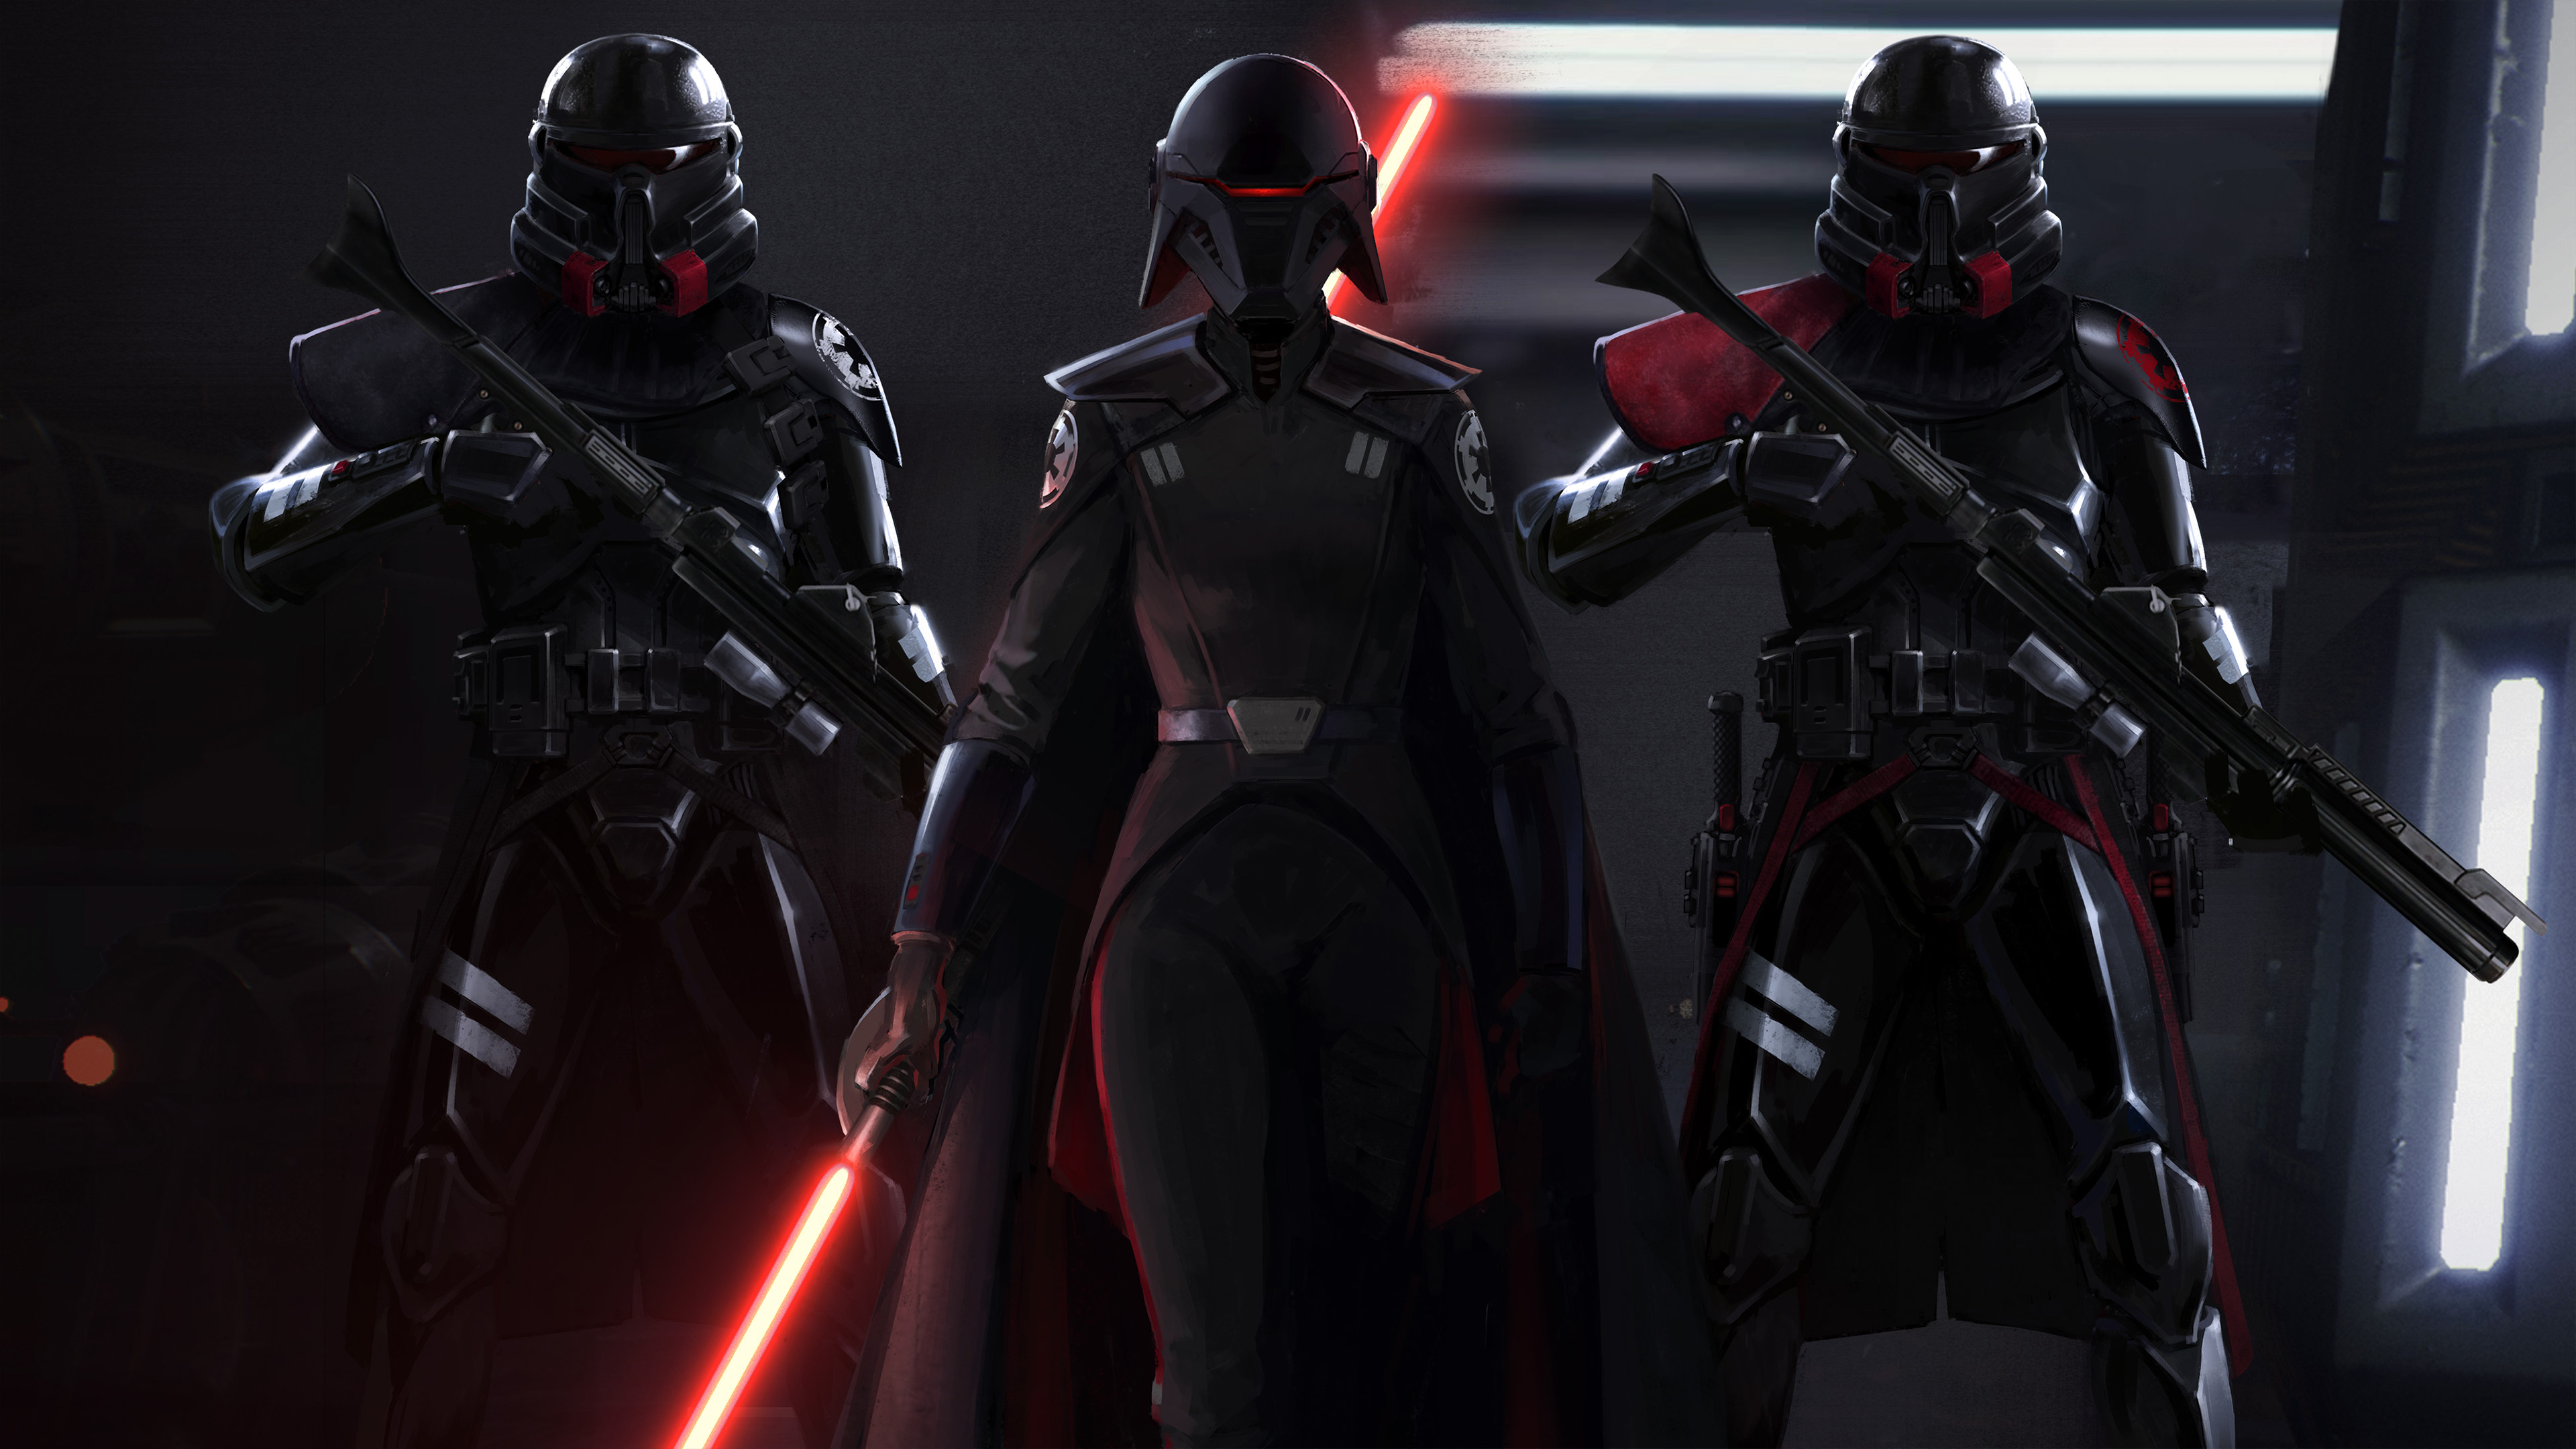 Star Wars Jedi Fallen Order Wallpapers In Ultra Hd 4k Gameranx